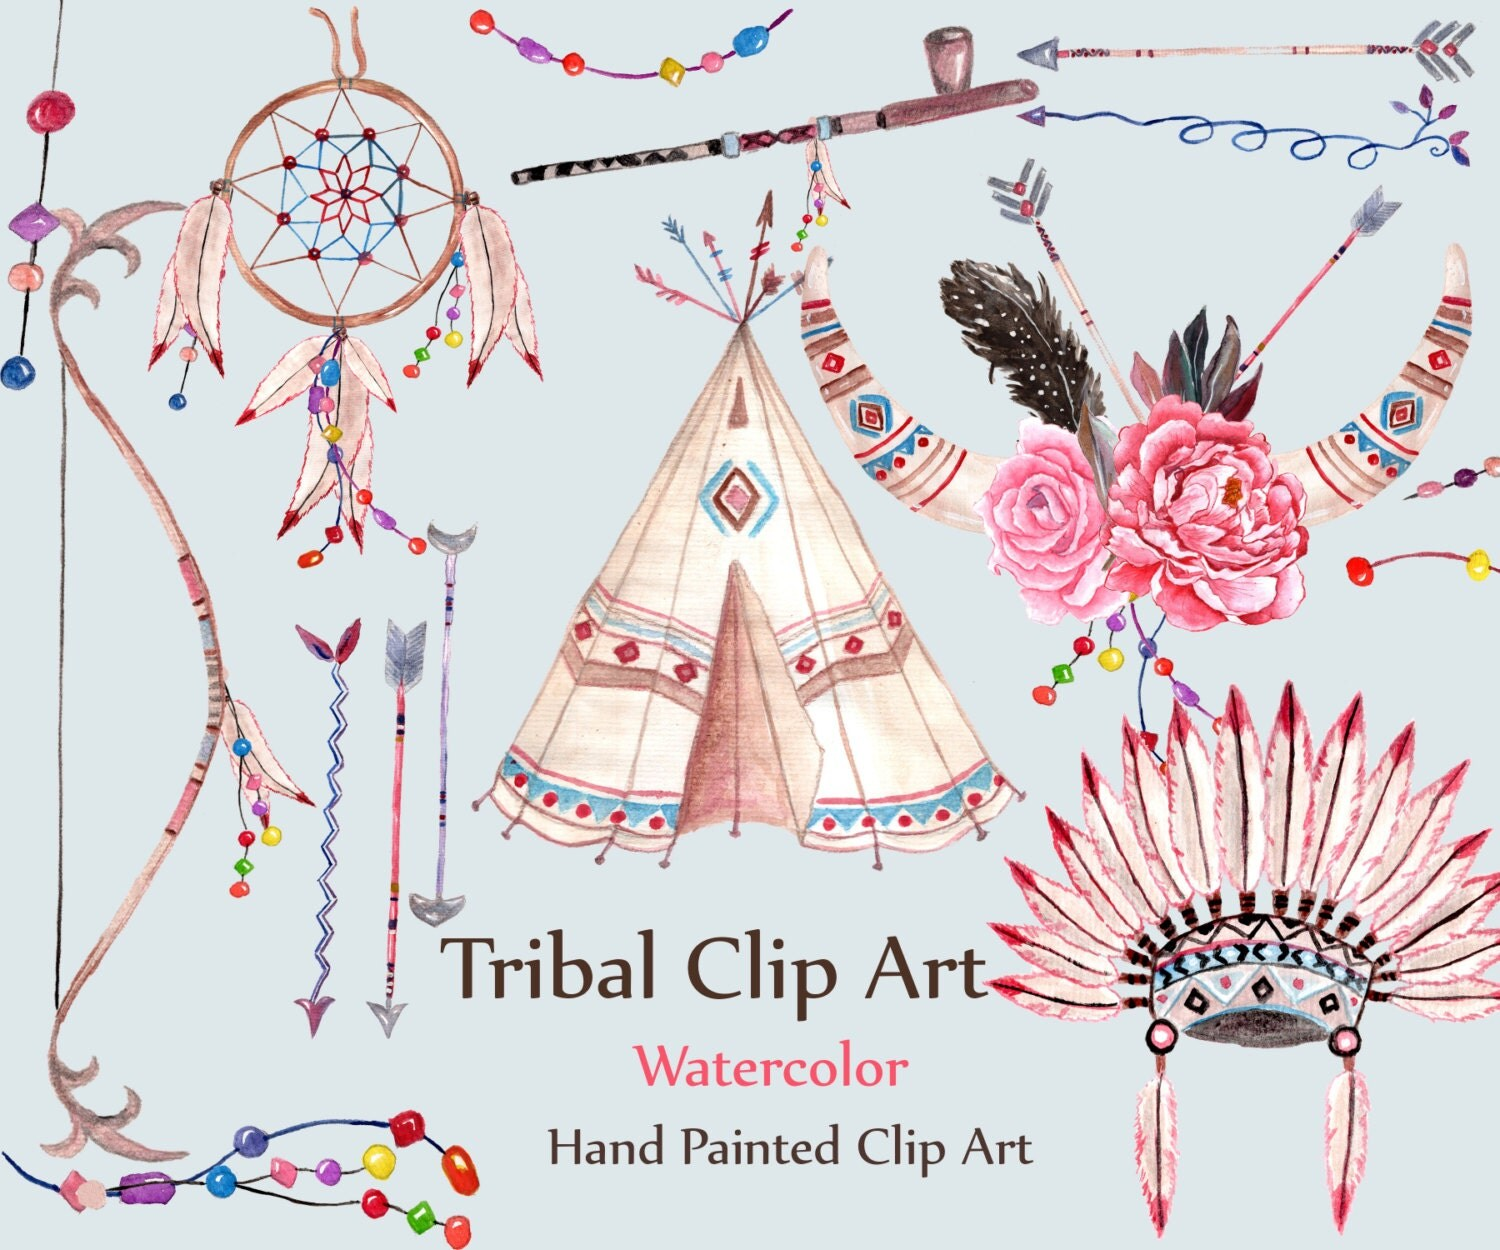 Watercolor tribal clipart: TRIBAL CLIP ART dream by LeCoqDesign